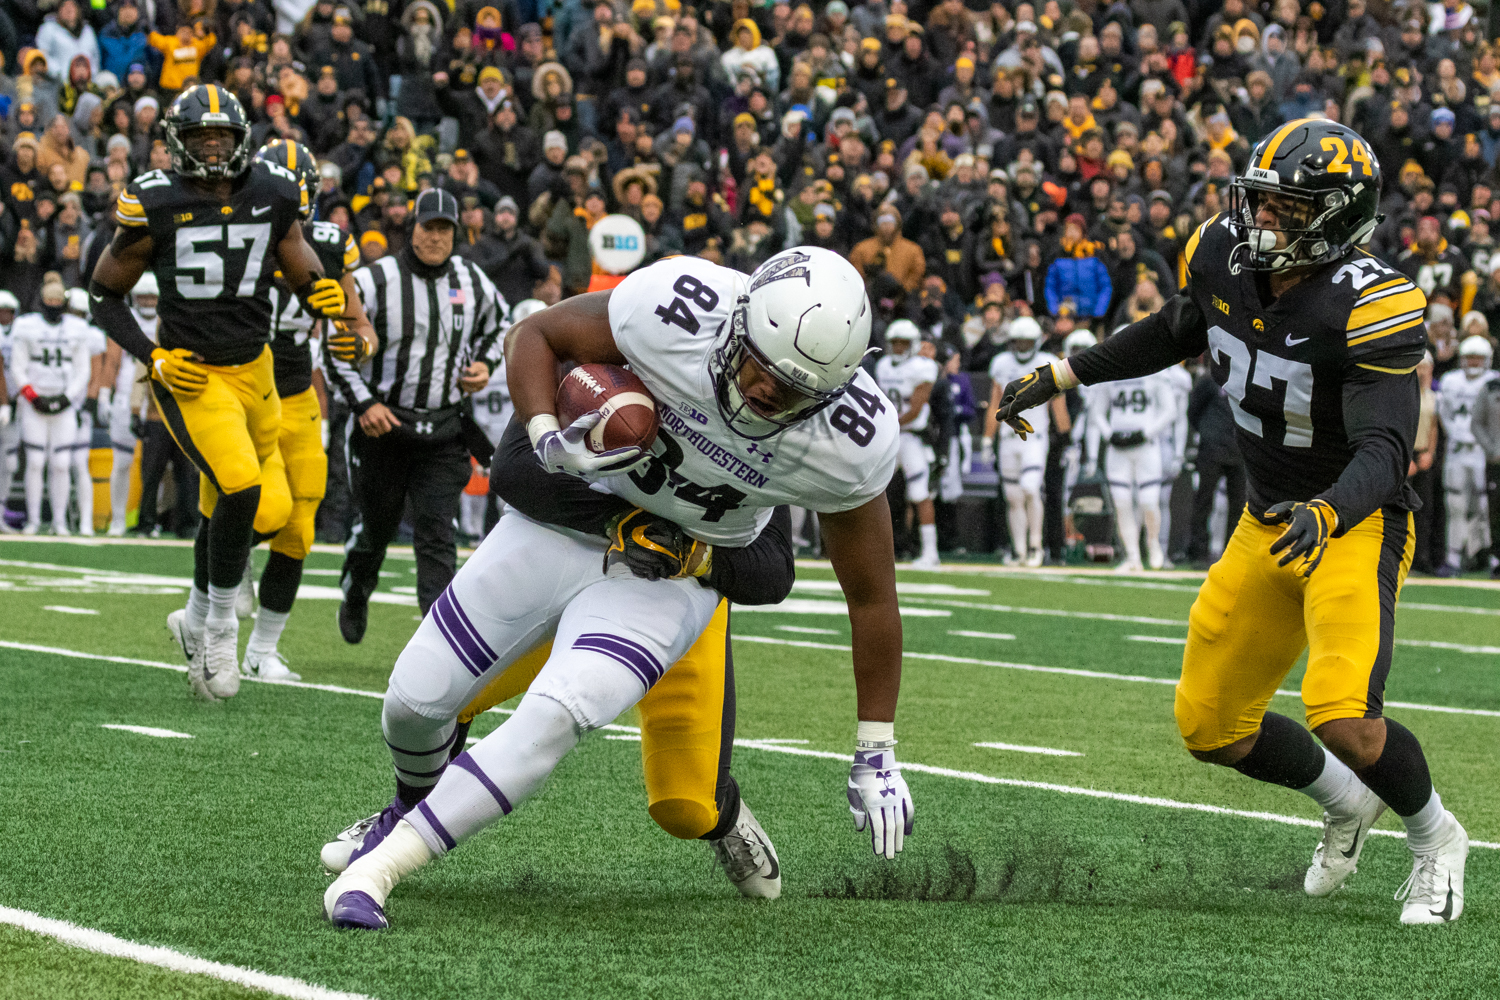 Northwestern+wide+receiver+Cameron+Green+%2384+is+wrapped+up+by+the+Iowa+defense+during+a+game+against+Northwestern+University+on+Saturday%2C+Nov.+10%2C+2018+at+Kinnick+Stadium+in+Iowa+City.+The+Wildcats+defeated+the+Hawkeyes+14-10.+%28David+Harmantas%2FThe+Daily+Iowan%29